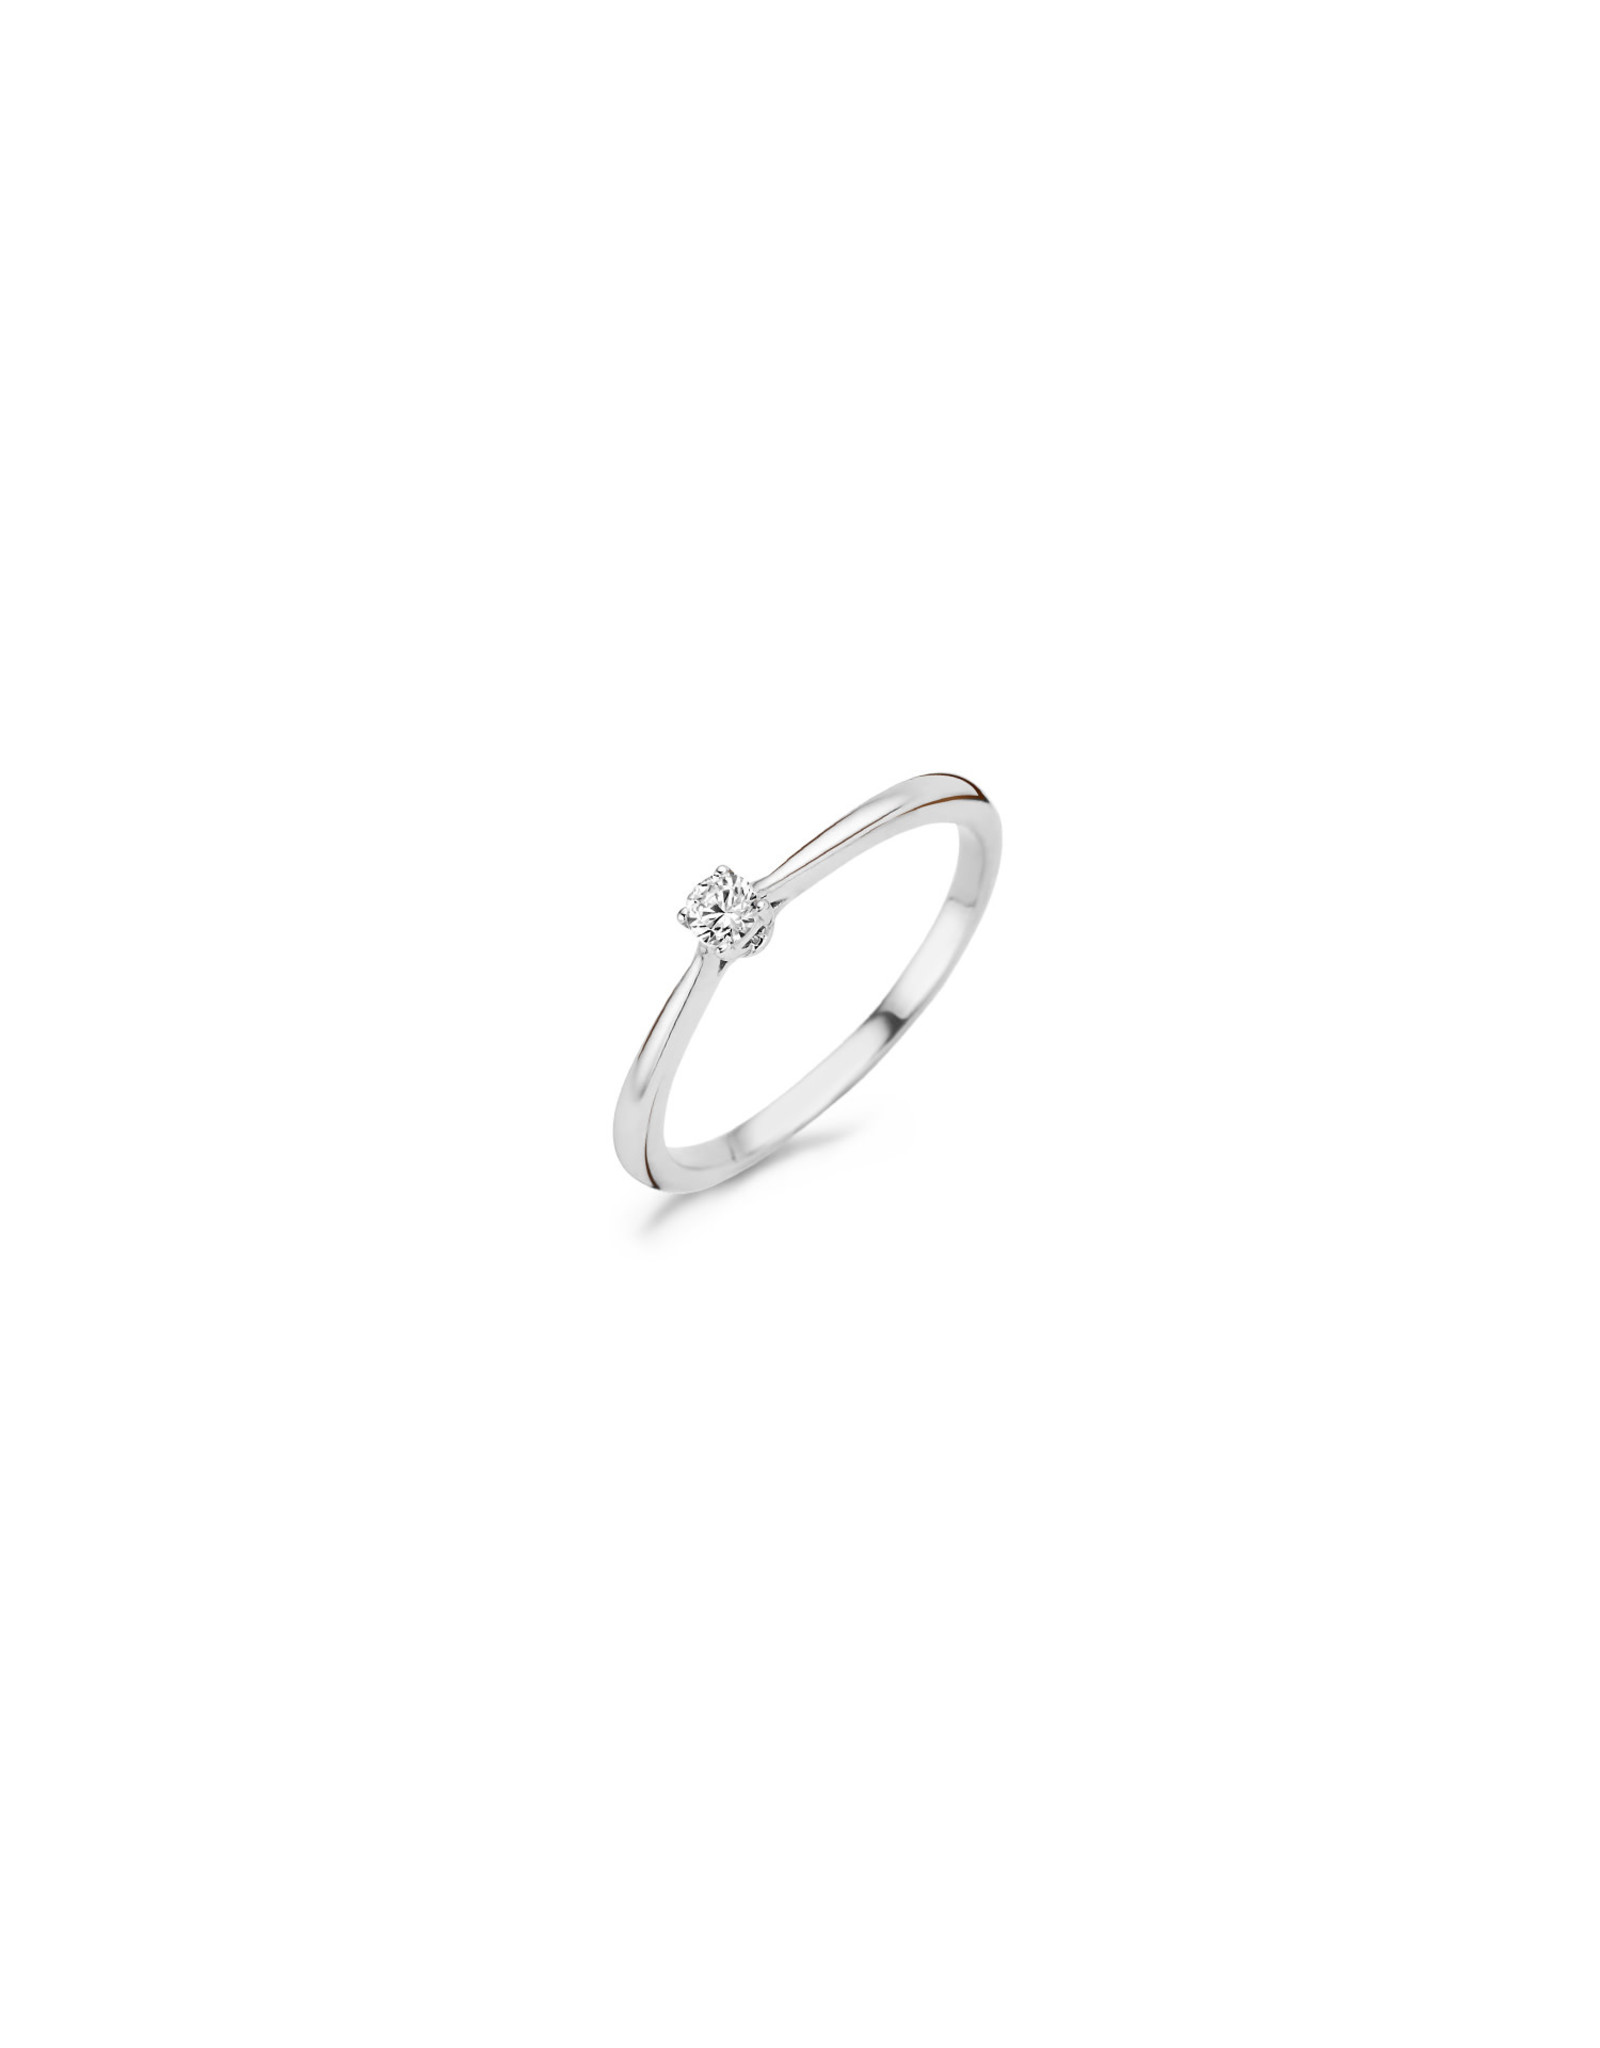 blush Ring Blush wit goud 14kt 1186WZI zircoon maat52